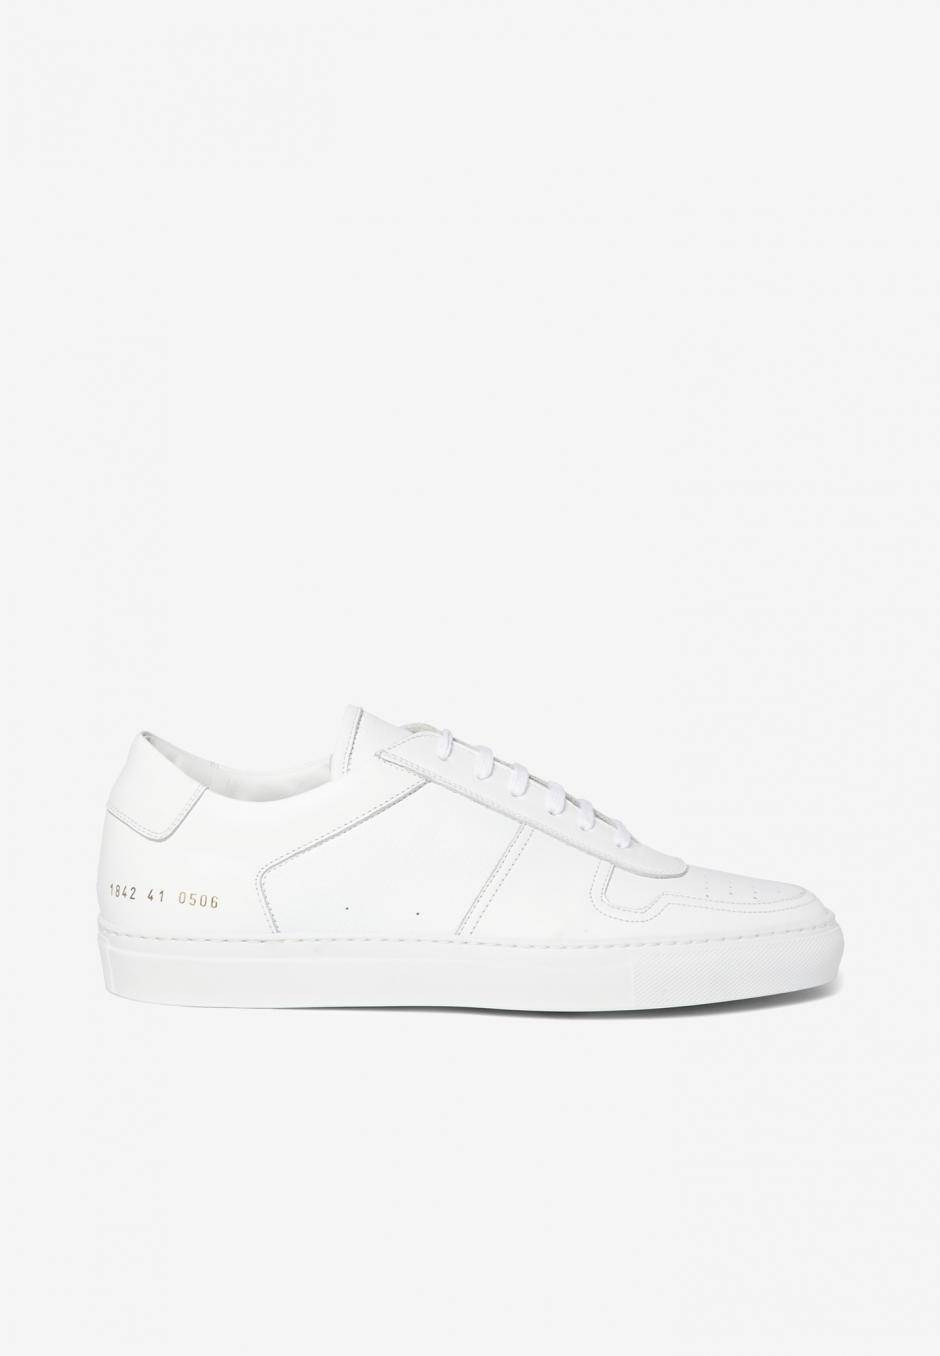 Common Projects Bball Low Leather White